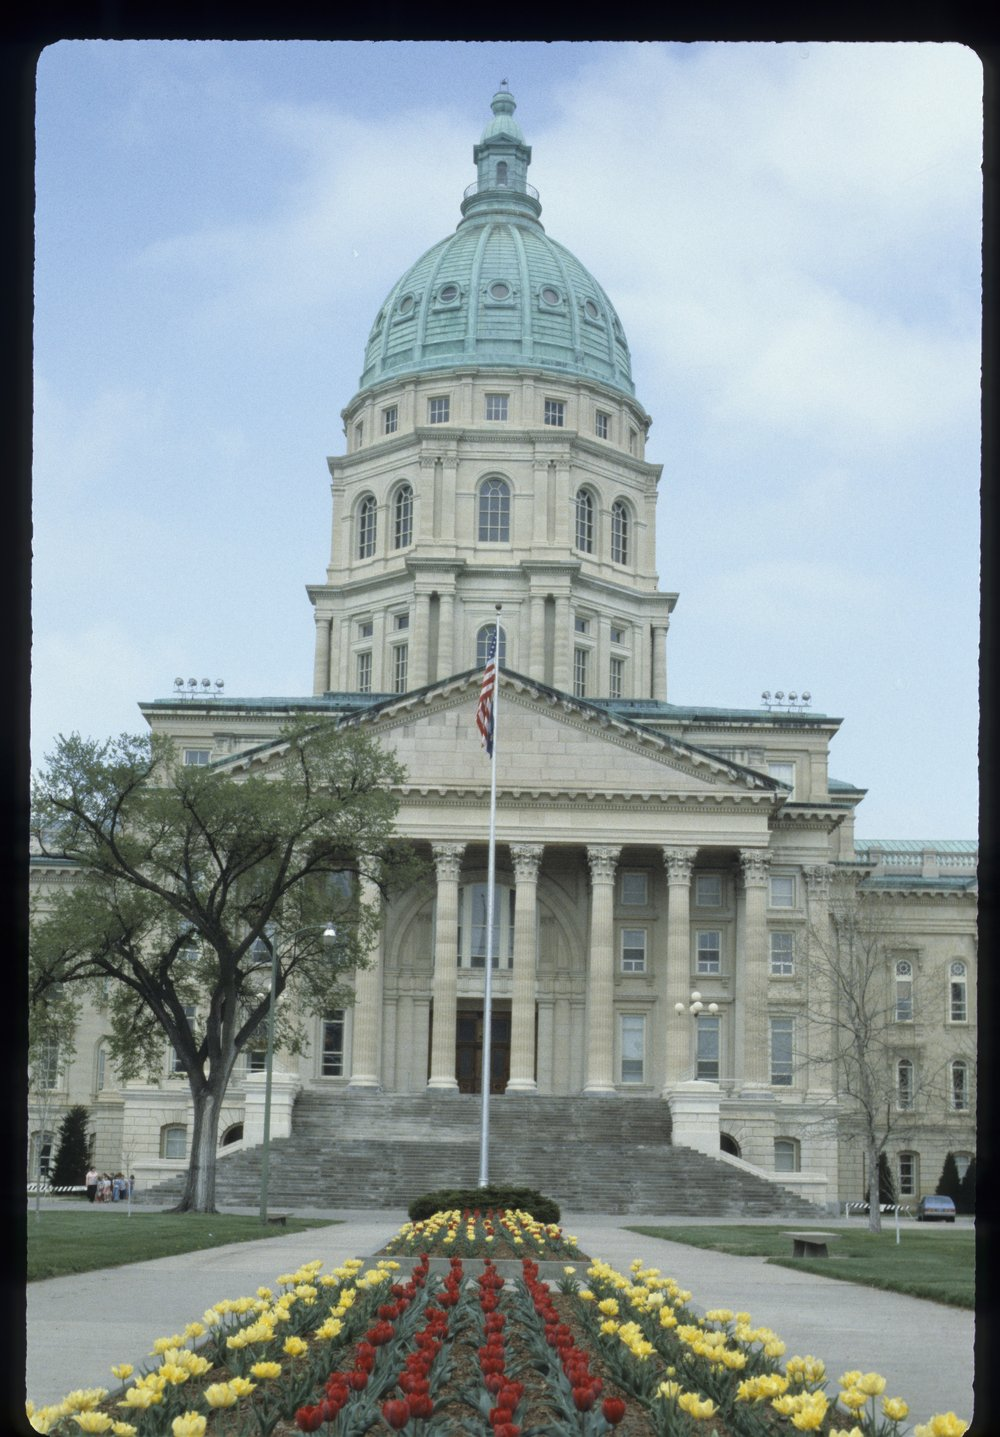 Kansas capitol and grounds in Topeka, Kansas